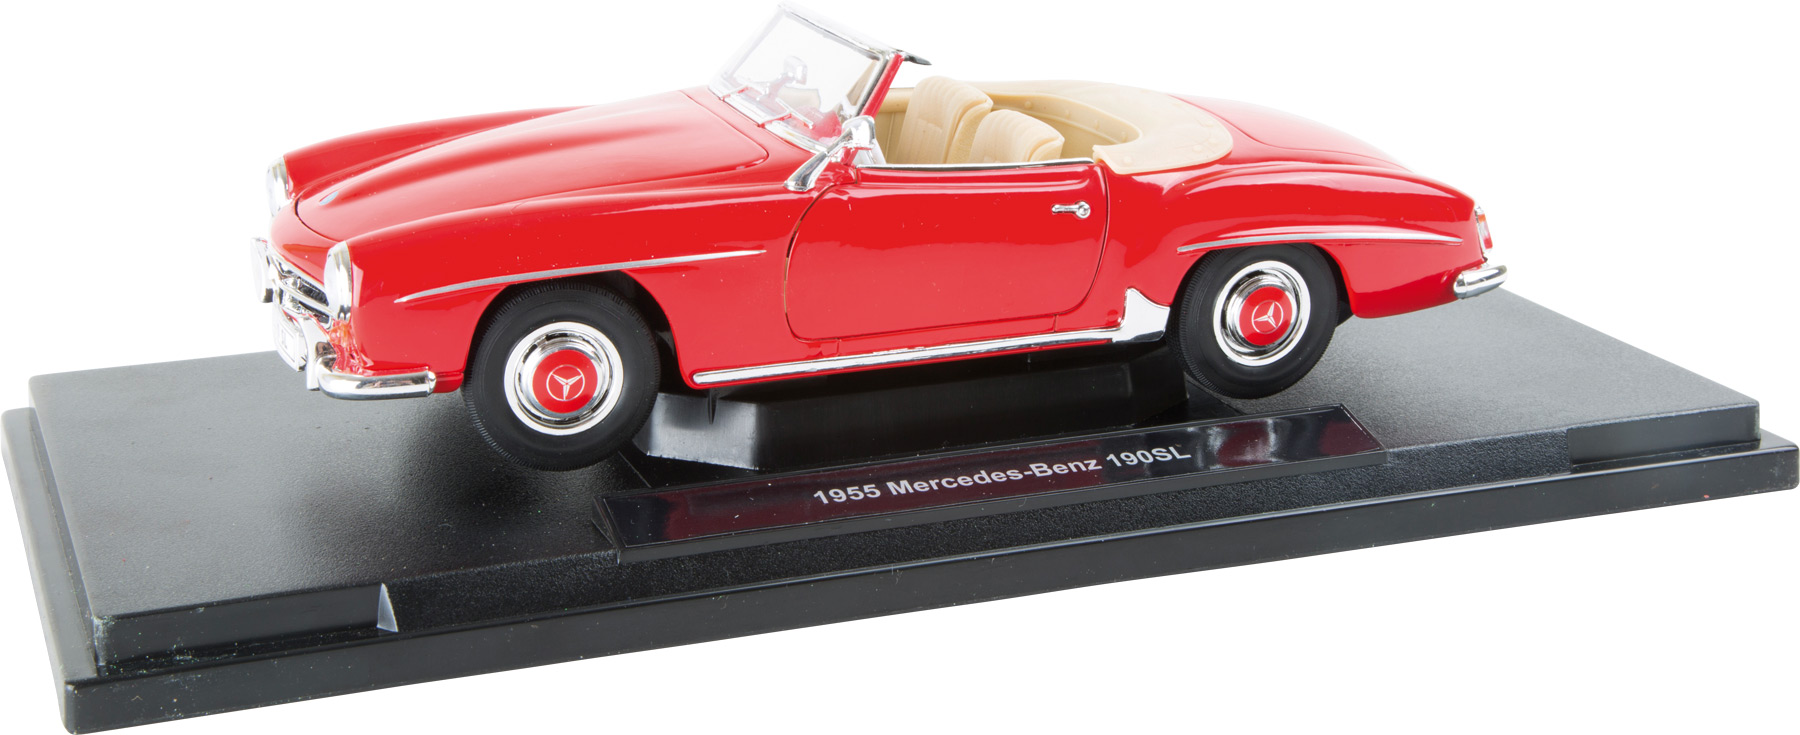 Small Foot Mercedes-Benz 190 SL (1955) model 1:18 červený